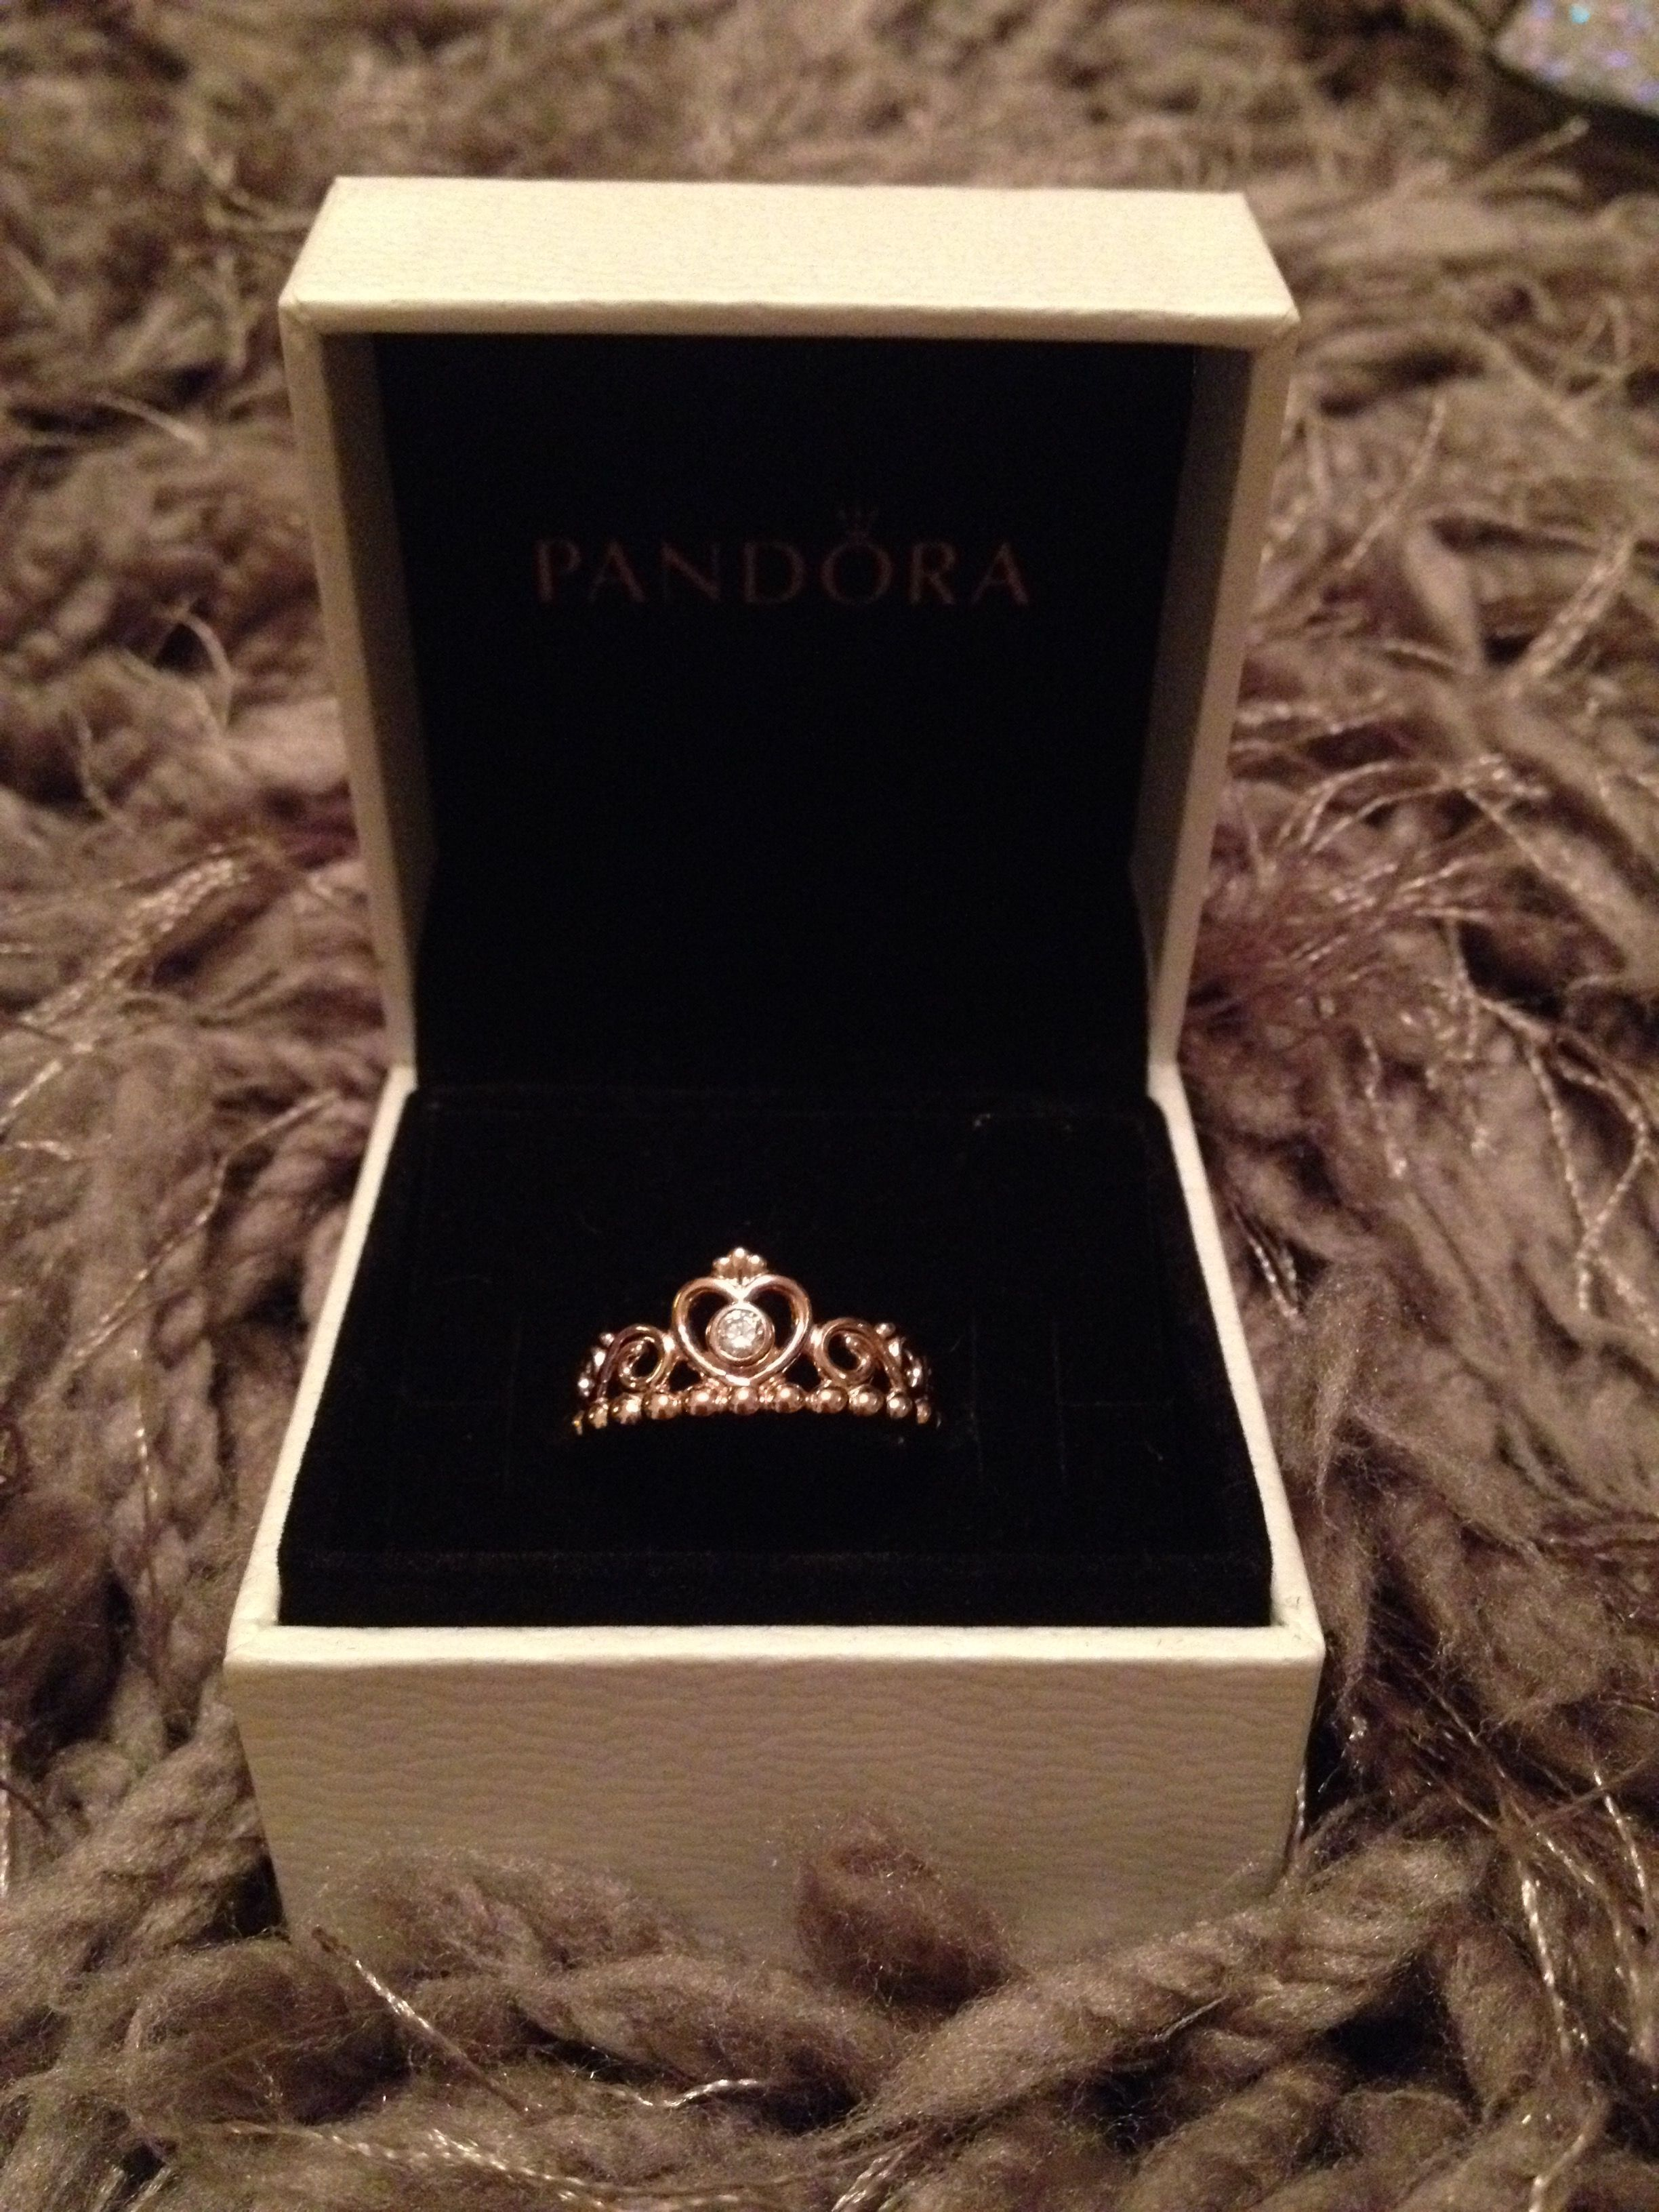 81a02c920 A Forever Ring To Show Your Everlasting Love   Pandora Love ...